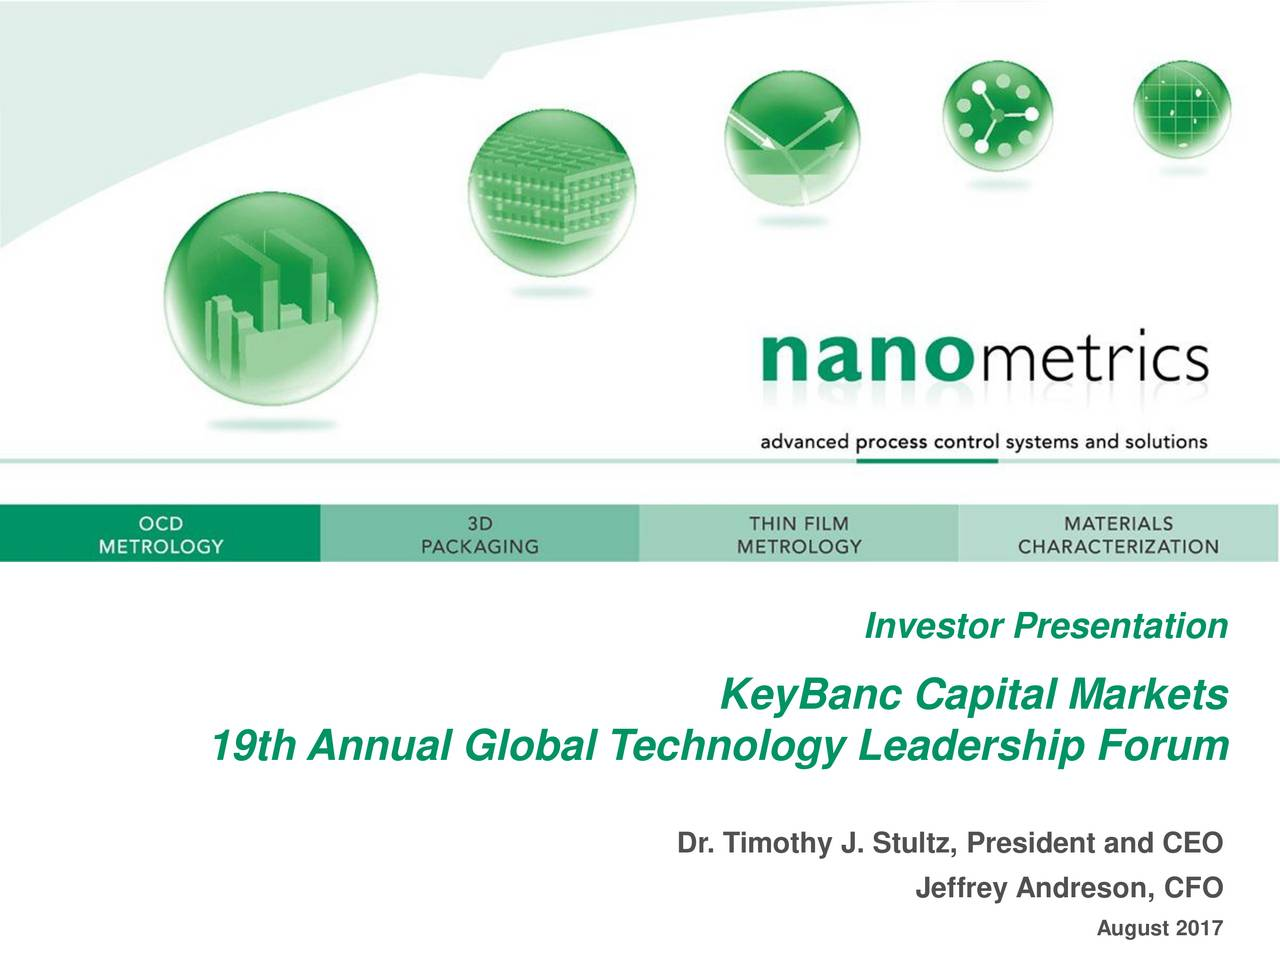 KeyBanc Capital Markets 19th Annual Global Technology Leadership Forum Dr. Timothy J. Stultz, President and CEO Jeffrey Andreson, CFO August 2017